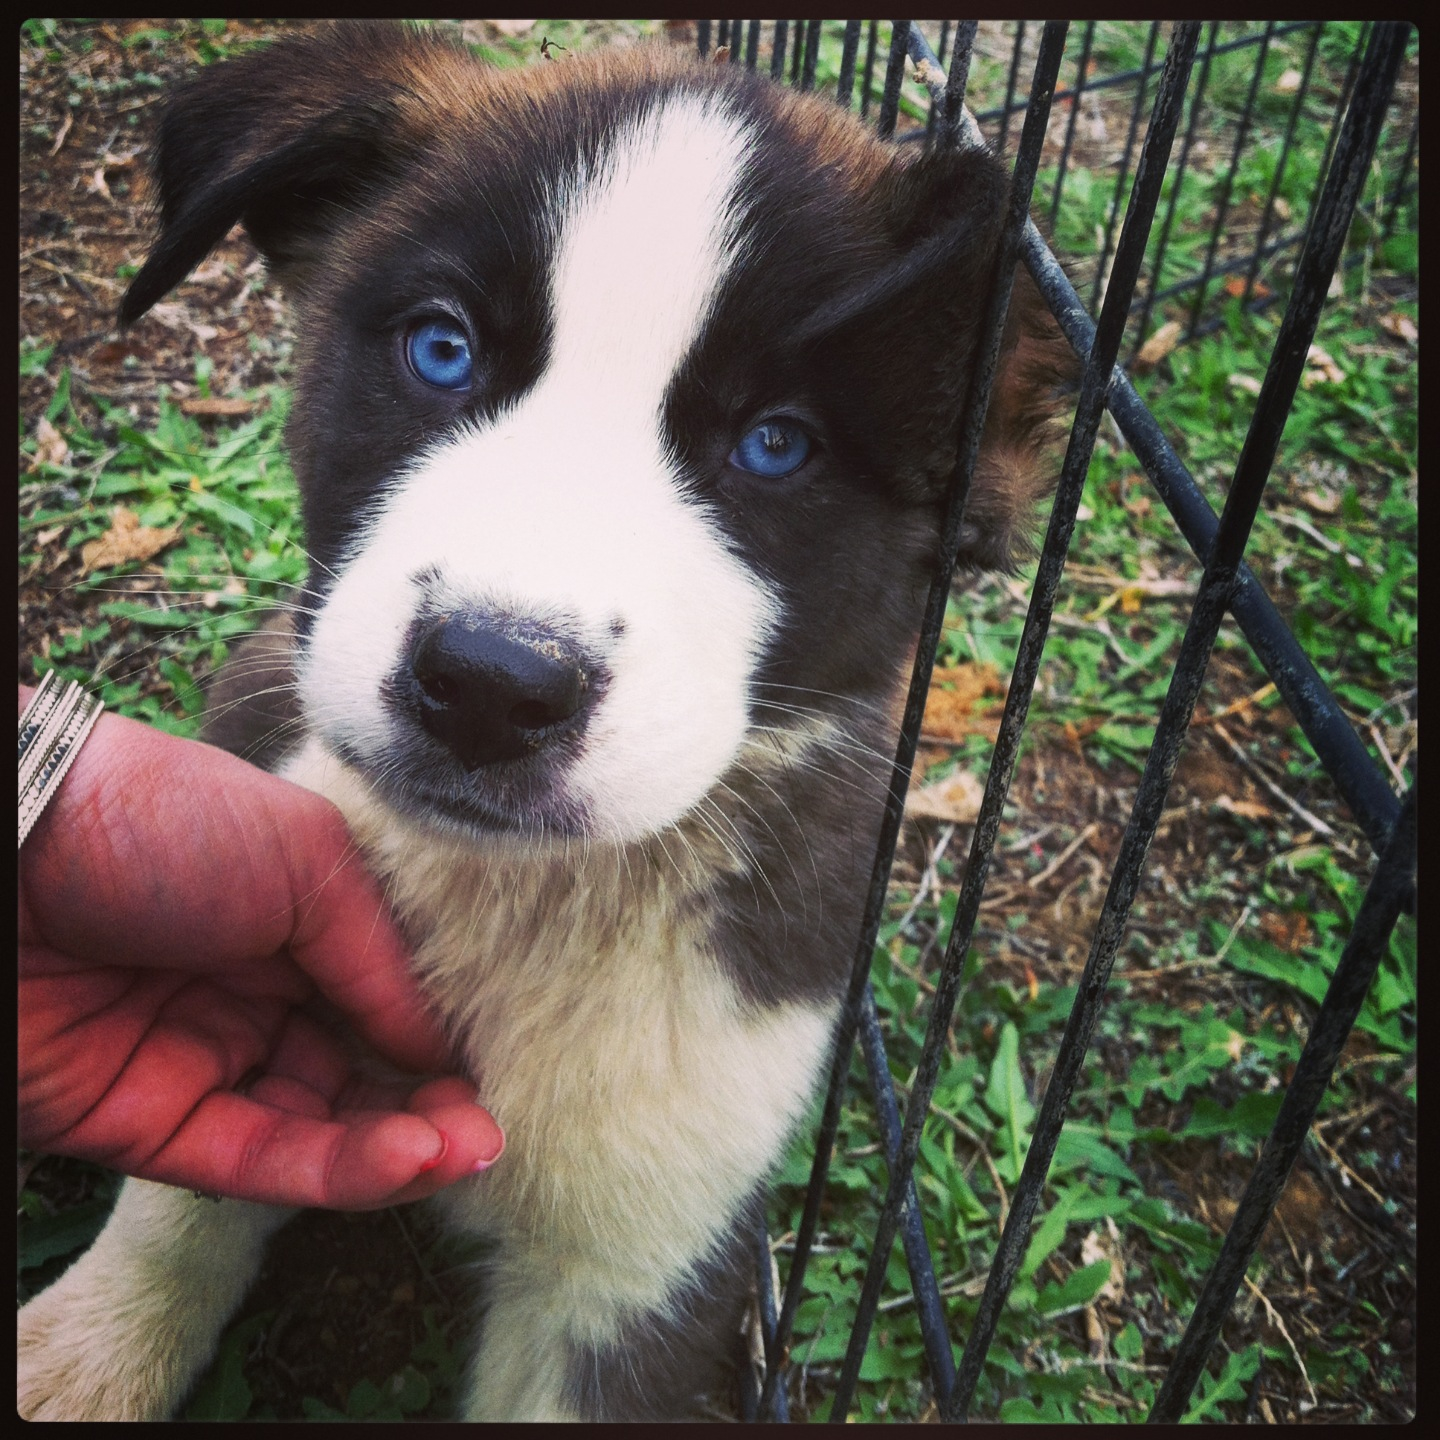 Modish Sale Your Cause Husky Mix Puppies Sale Indiana Husky Mix Puppies Here Are Some S Saint Bernard Husky Mix Saint Bernard Husky Mix Shop bark post Husky Mix Puppies